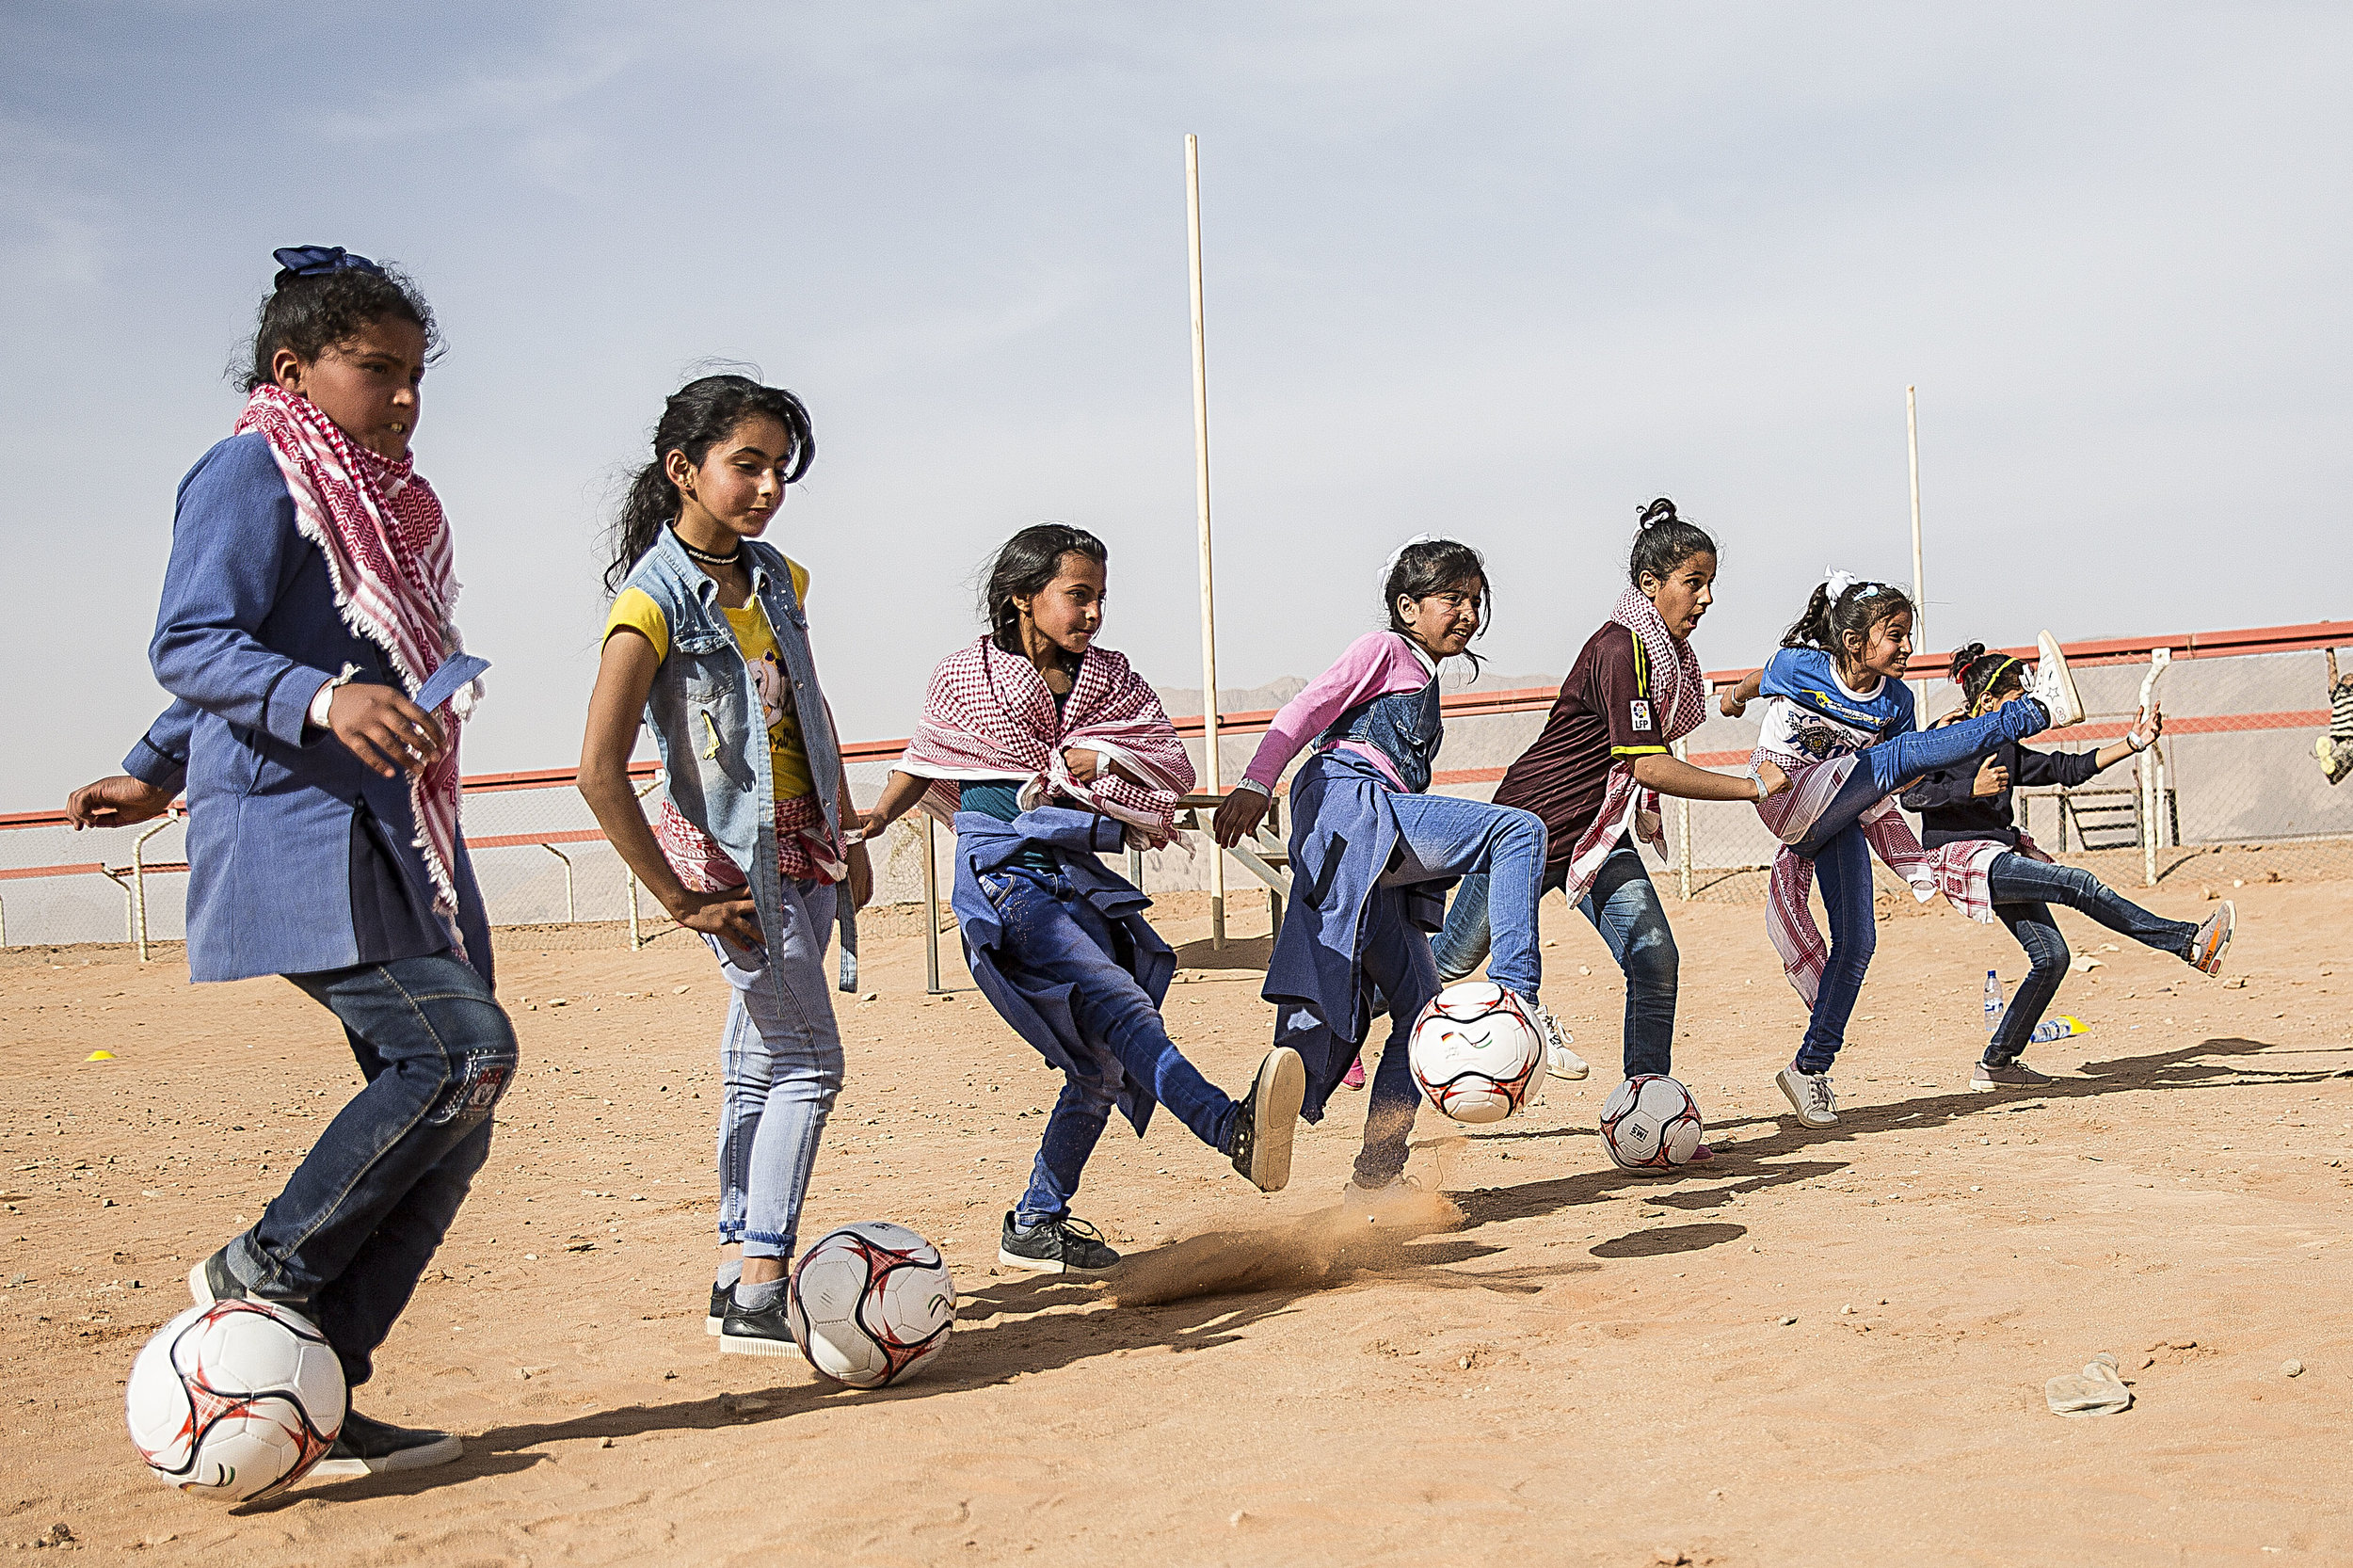 EPF held football clinics for young girls to coincide with their record attempt in Jordan. Img: Dana Roesiger